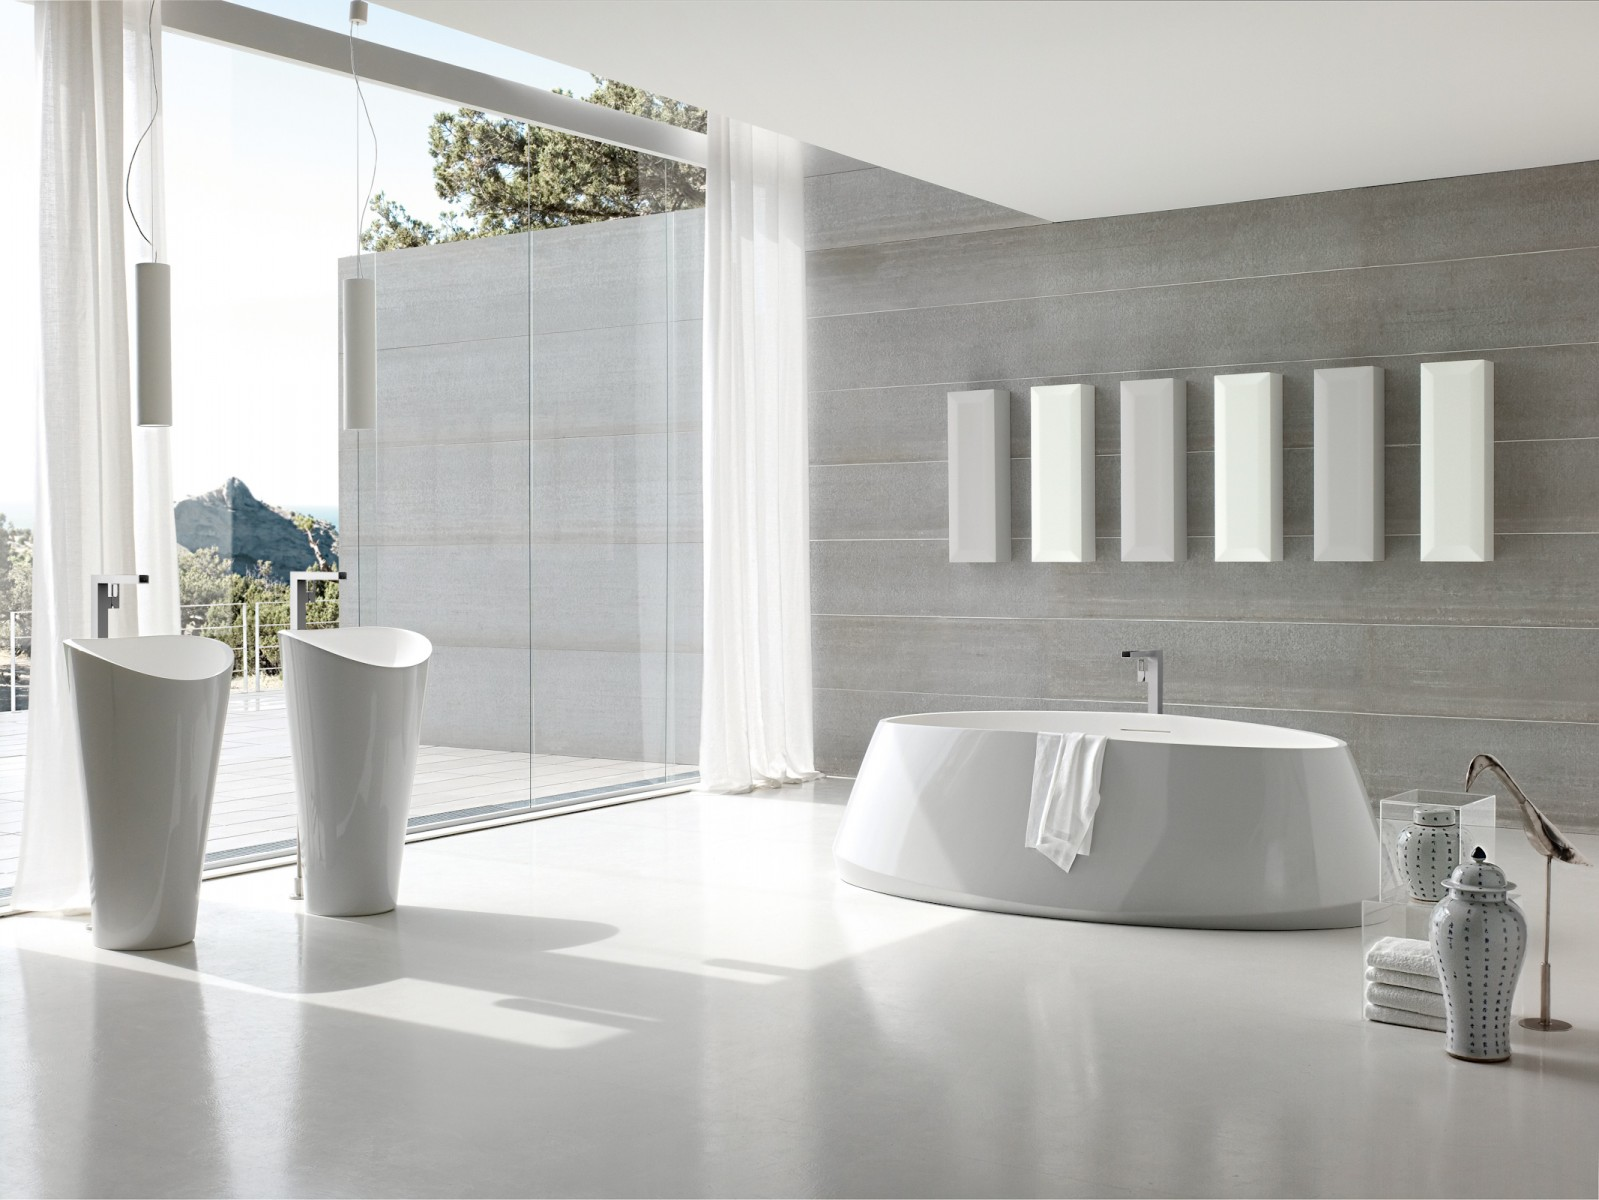 Inspiration To Decor Modern Bathroom Design Ideas Bring A Beauty And Serenity Impression In It Roohome